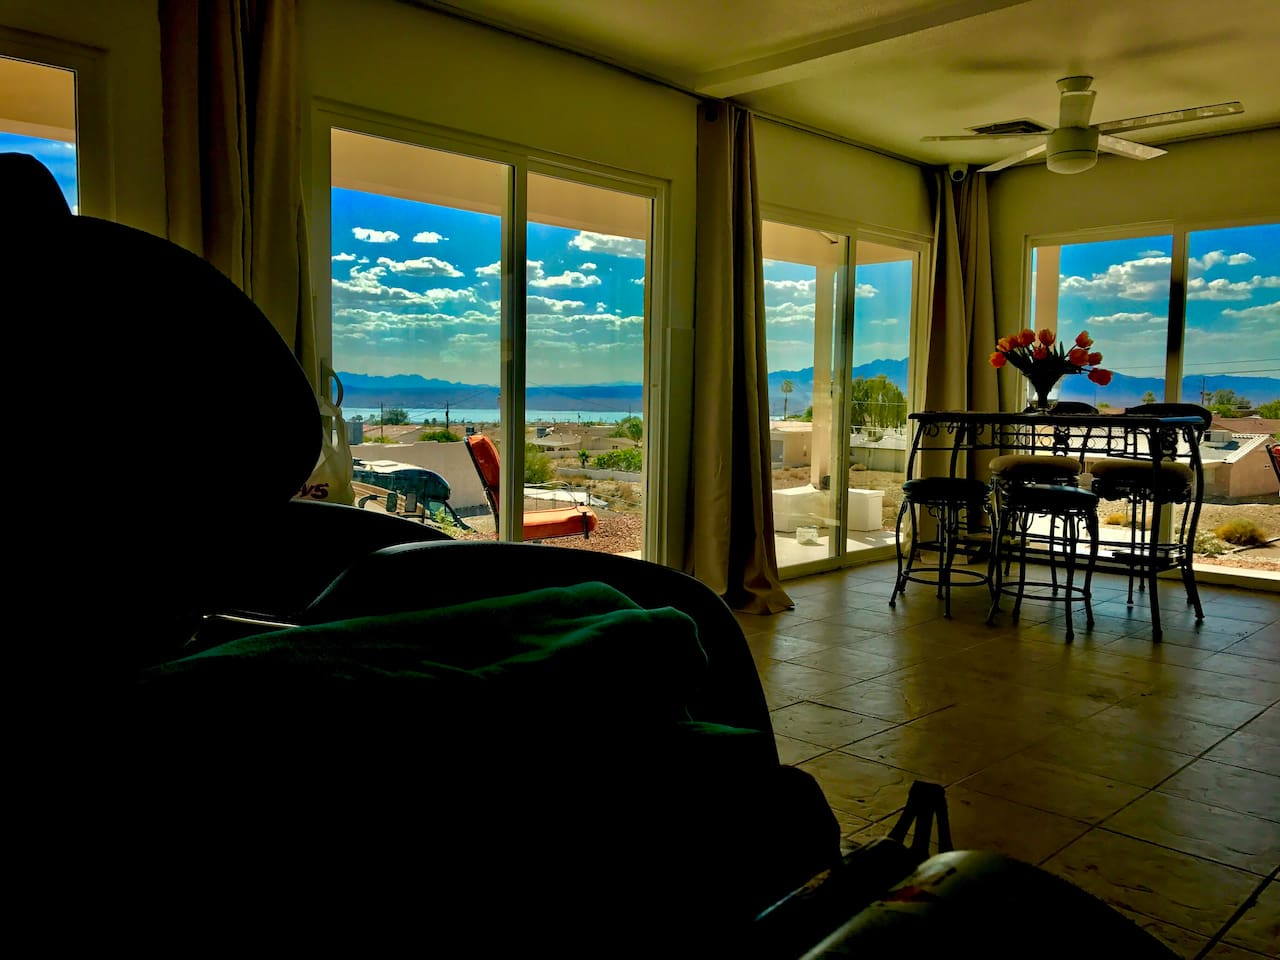 Views from the kitchen area while relaxing in the new 2017 Kahuna massage chair head to toe!!